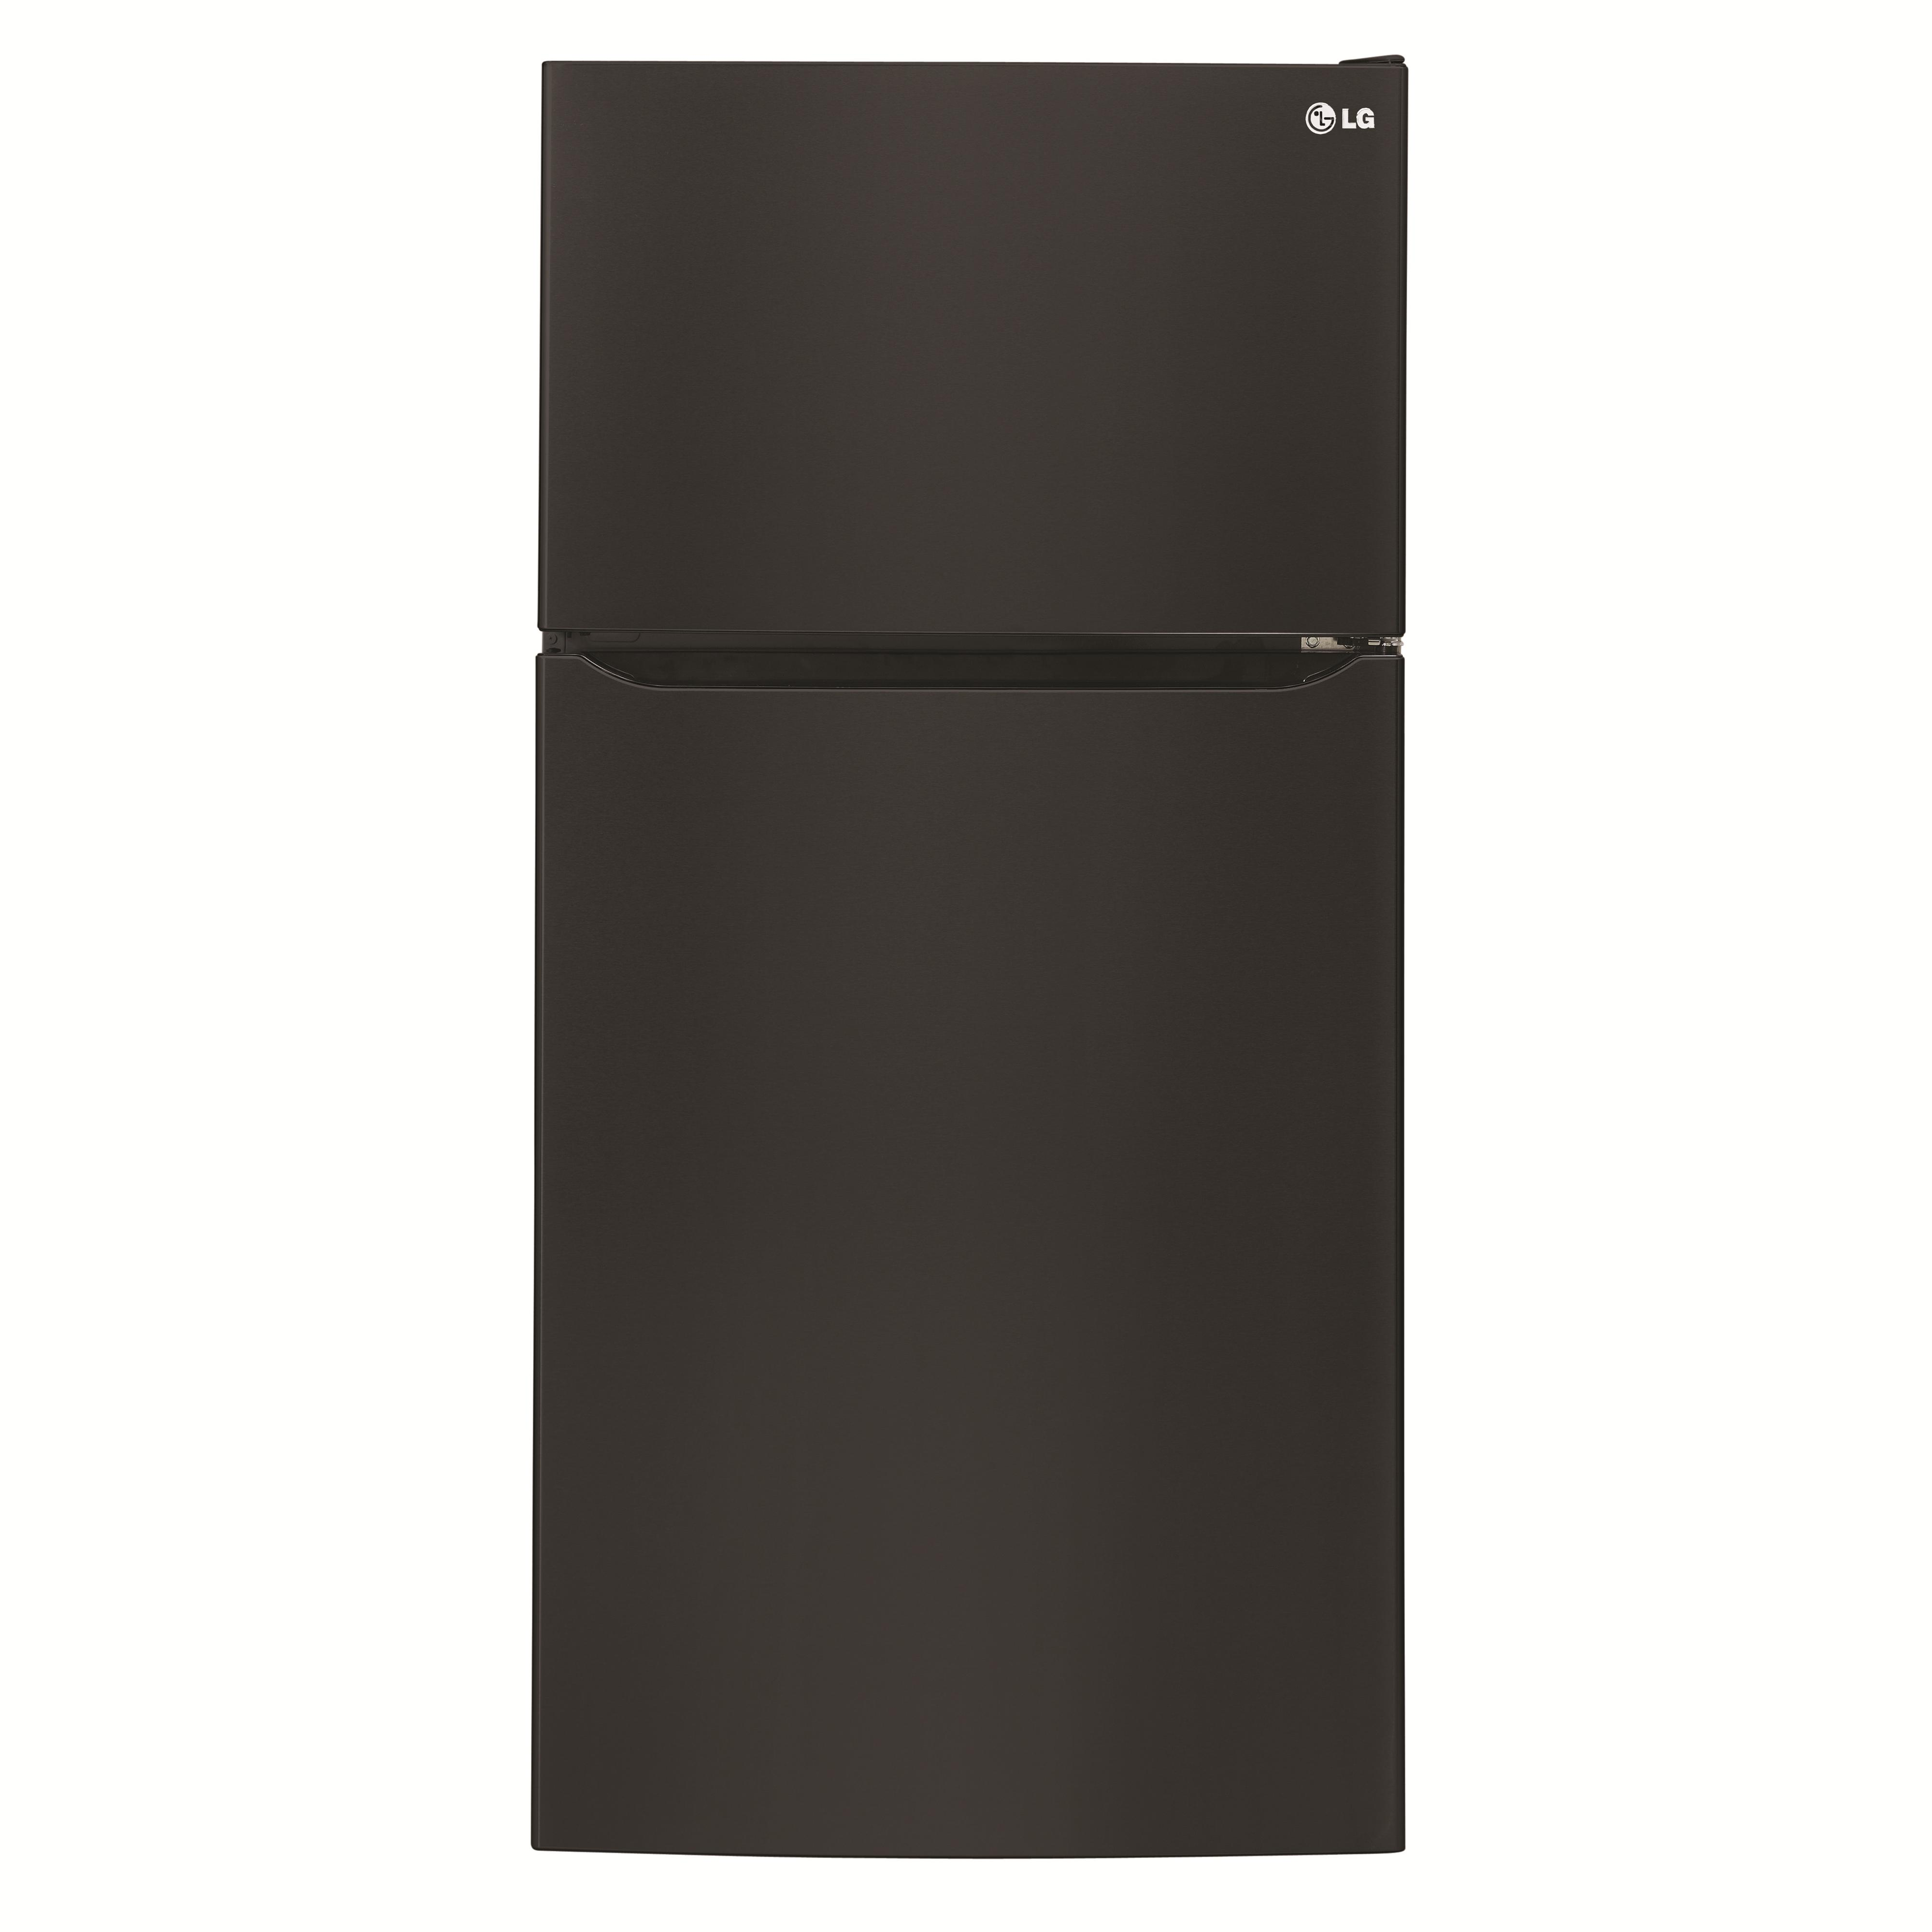 LG Appliances Top-Freezer Refrigerator 24 cu. ft. Top Freezer Refrigerator - Item Number: LTCS24223B